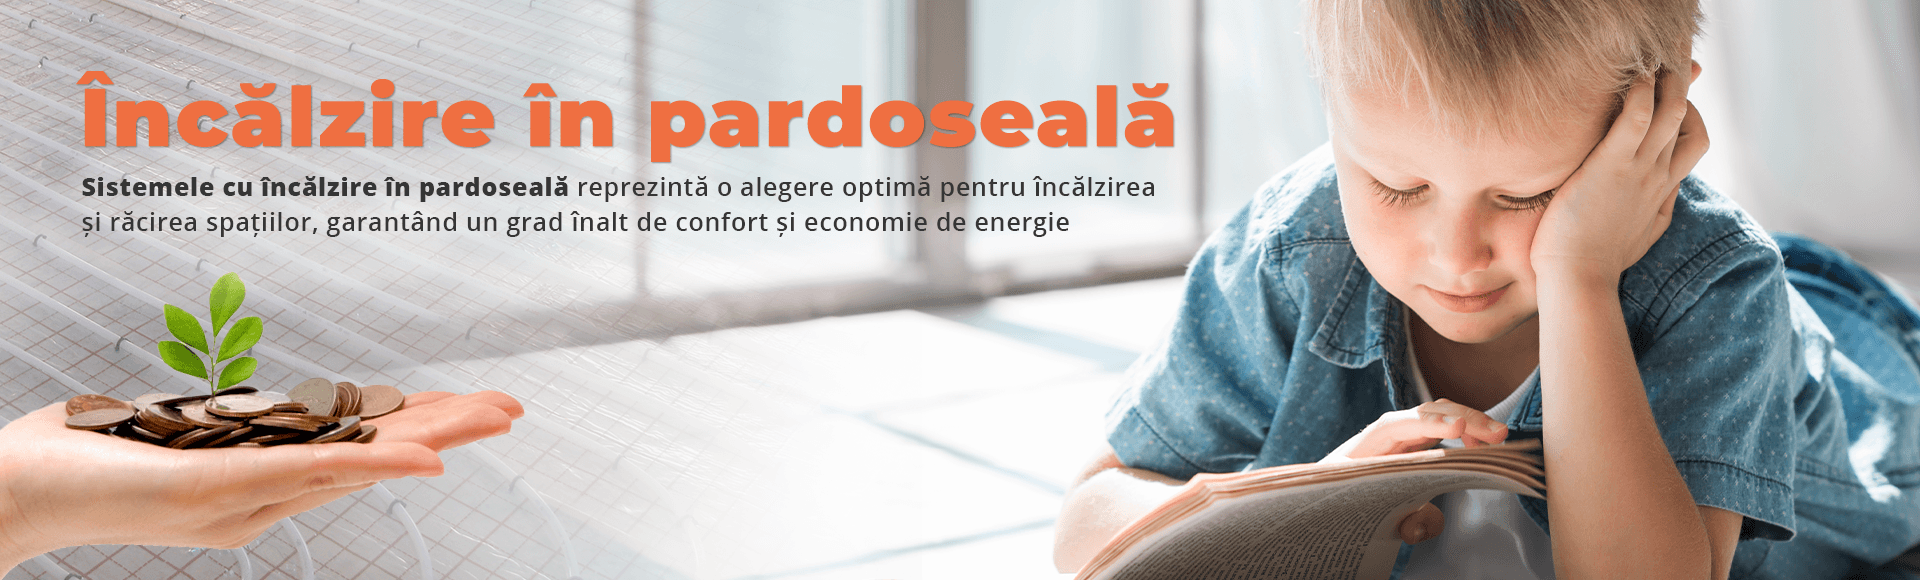 Incalizre in pardoseala